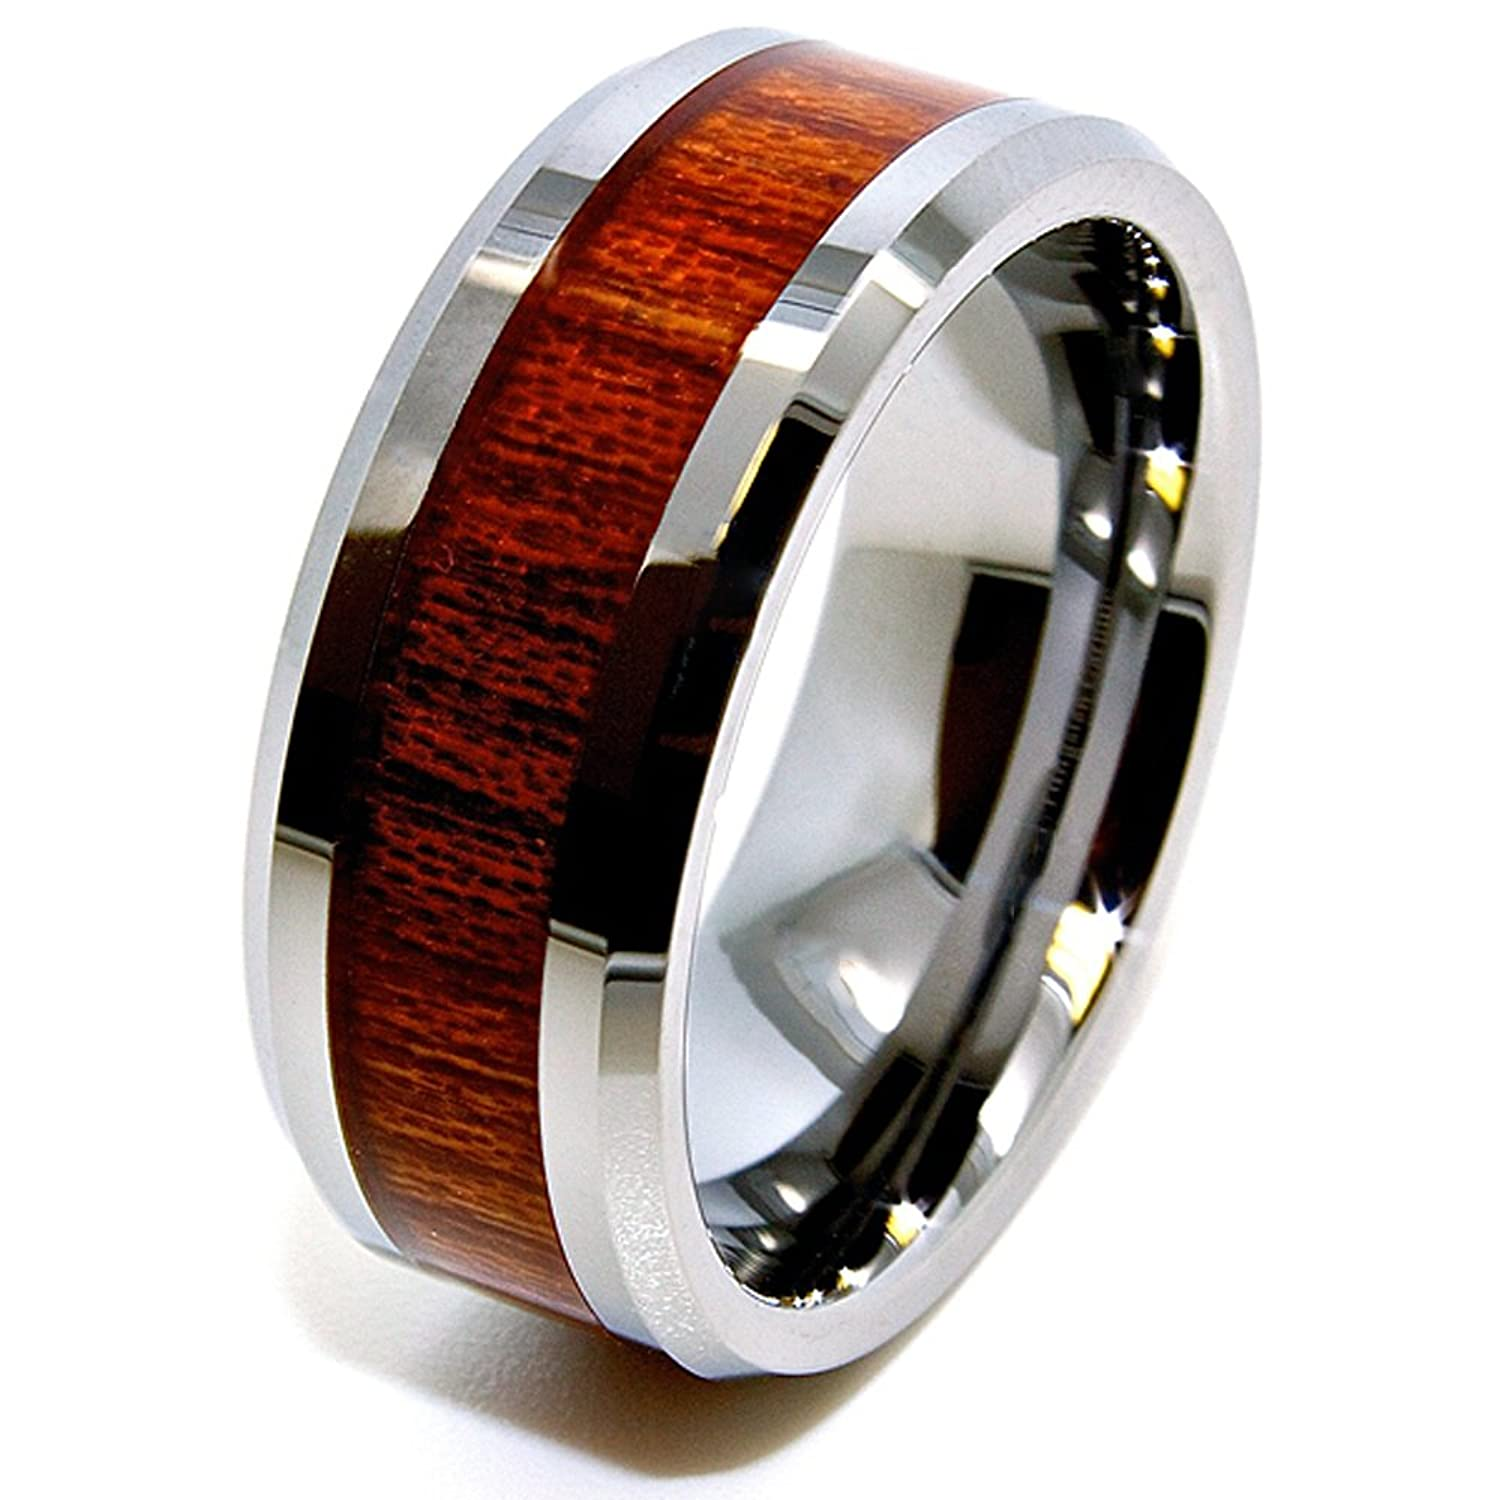 Uni 8mm Wood Grain Inlay Tungsten Wedding Band Engagement Ring